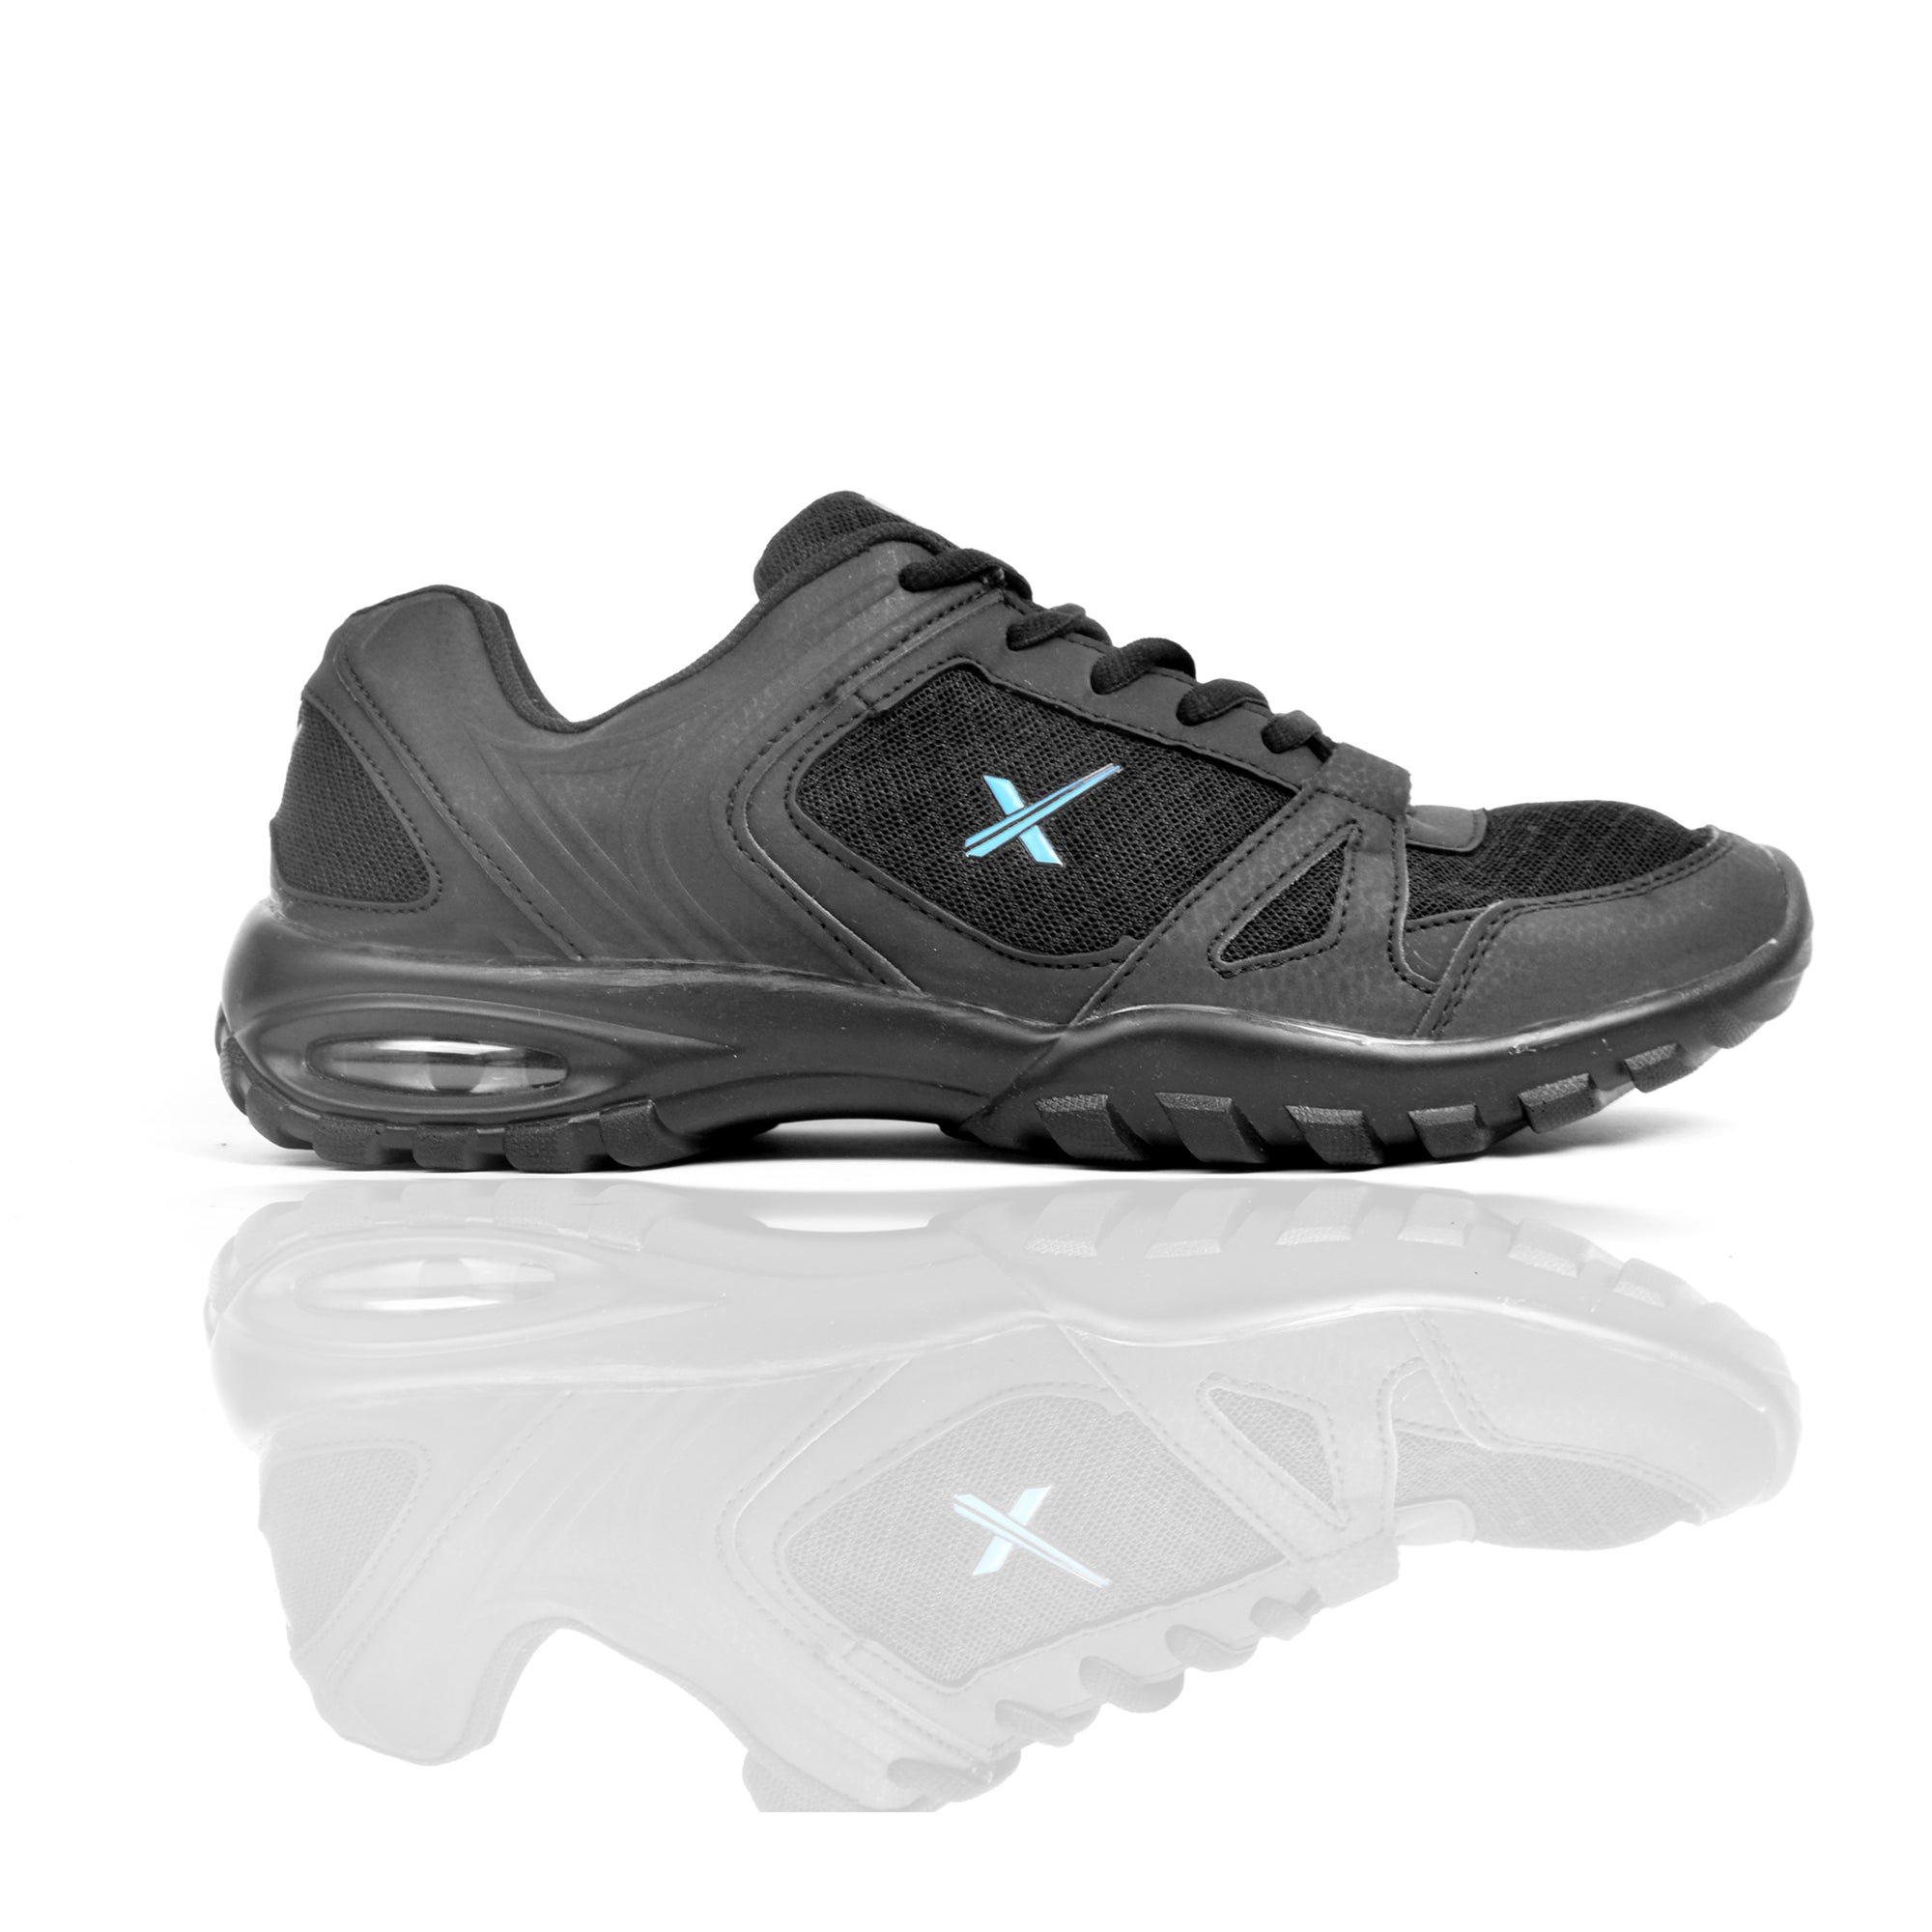 4f4f6b18d8a XTEP Diligent Sports Shoes For Men-NA7220 - BrandsEgo